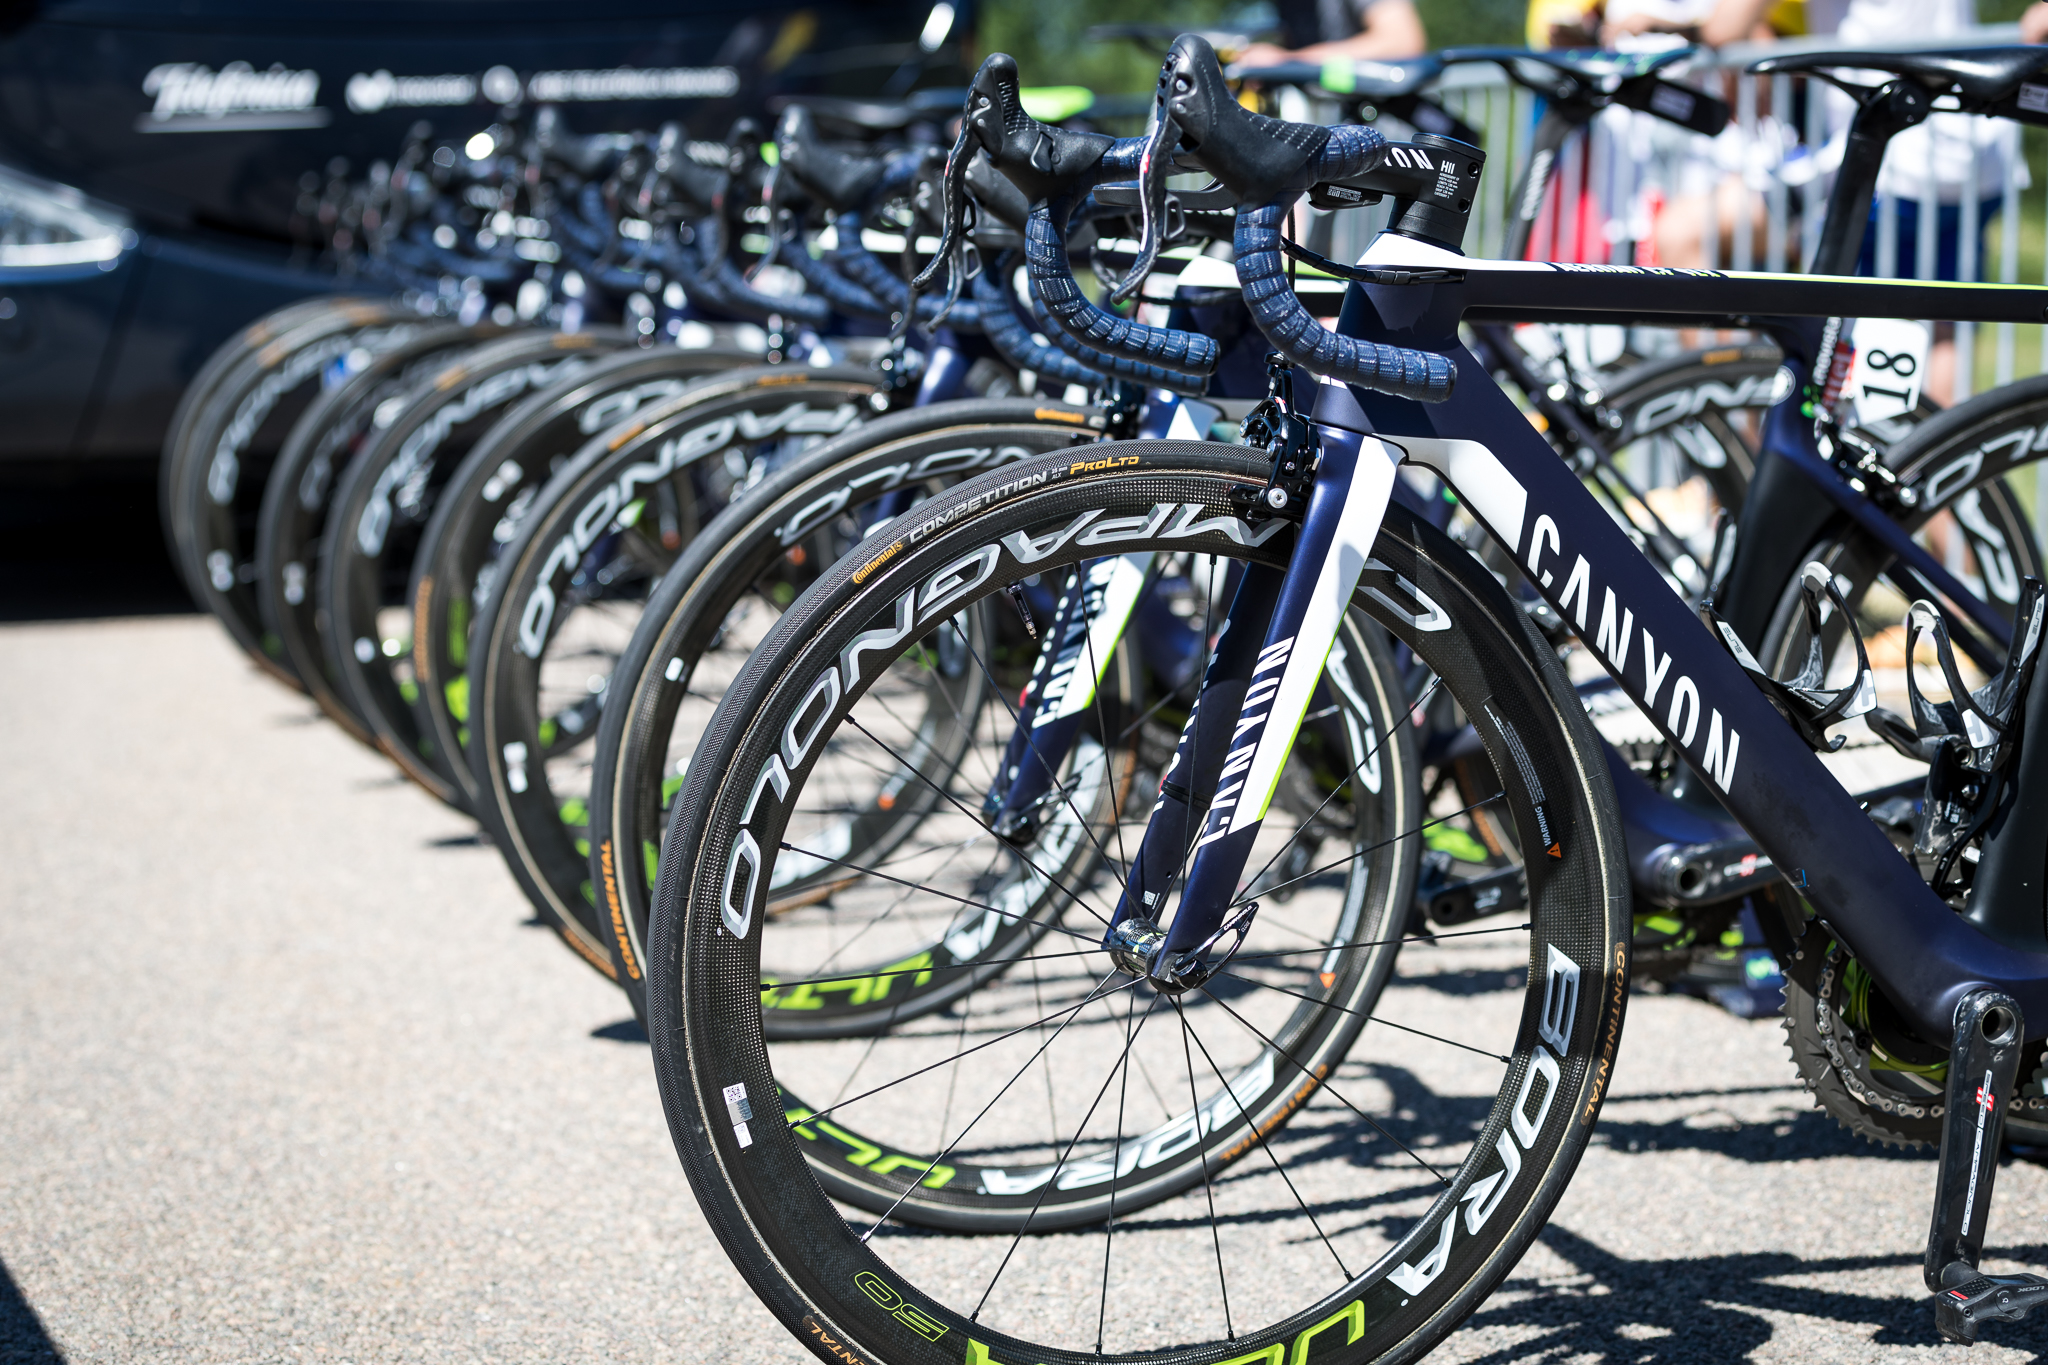 "Movistar joins the pantheon of ""neatly arranged bicycles"" pictures! Canyon Aeroad frames, with Campagnolo groupset and wheels. Super hot. ALSO, CANYON BIKES, WHEN WILL YOU START DISTRIBUTING IN THE US?! HURRY UP AND SHUT UP AND TAKE MY MONEY!"